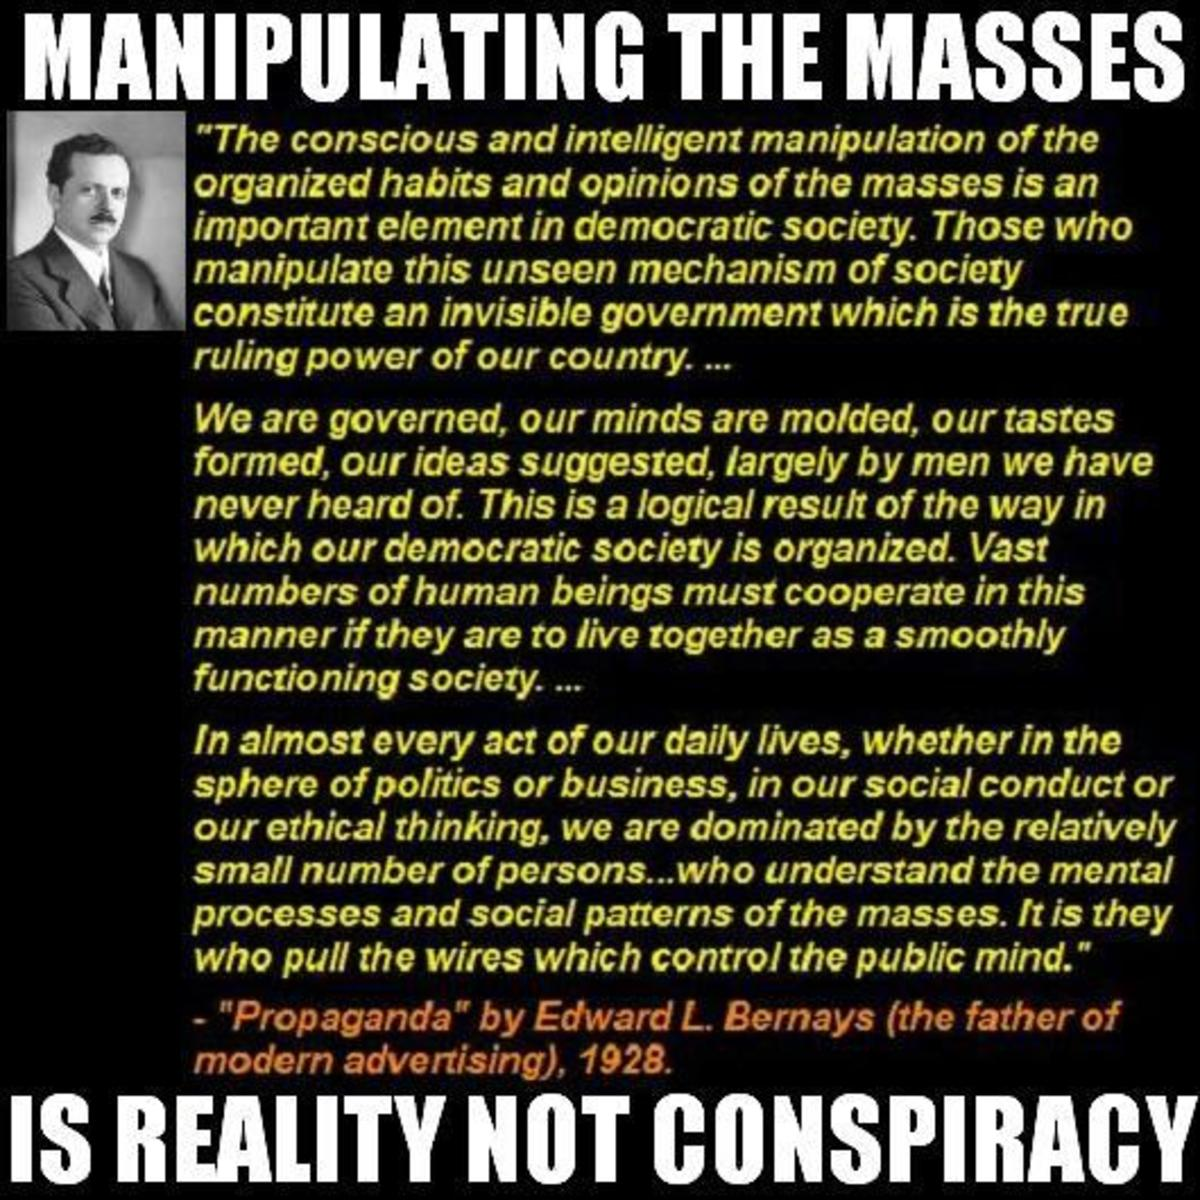 These people know very well how to control human consciousness. They've been doing it quite a long time. Food, water, energy, clothing, health care, education, marketing, etc. The evidence is all over the place, everything is backwards from progress.